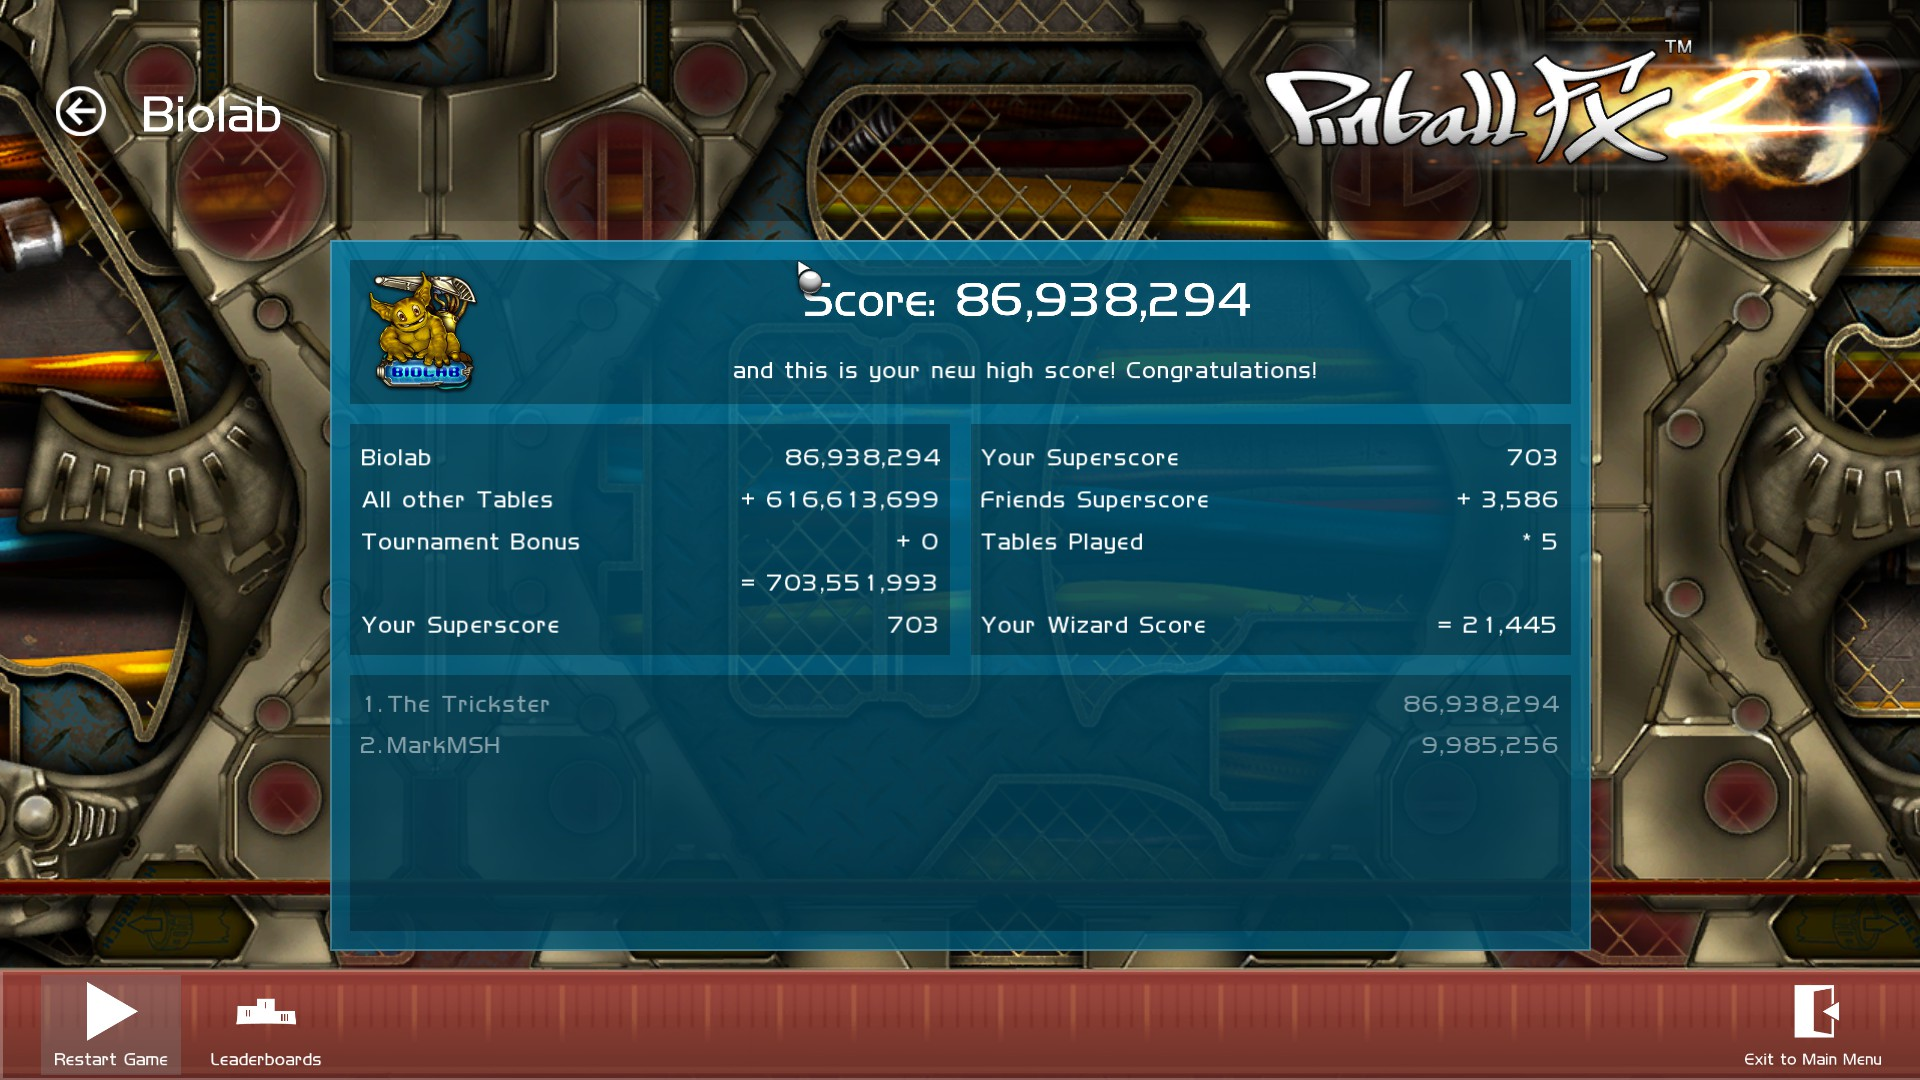 TheTrickster: Pinball FX 2: Biolab (PC) 86,938,294 points on 2015-12-07 06:33:51